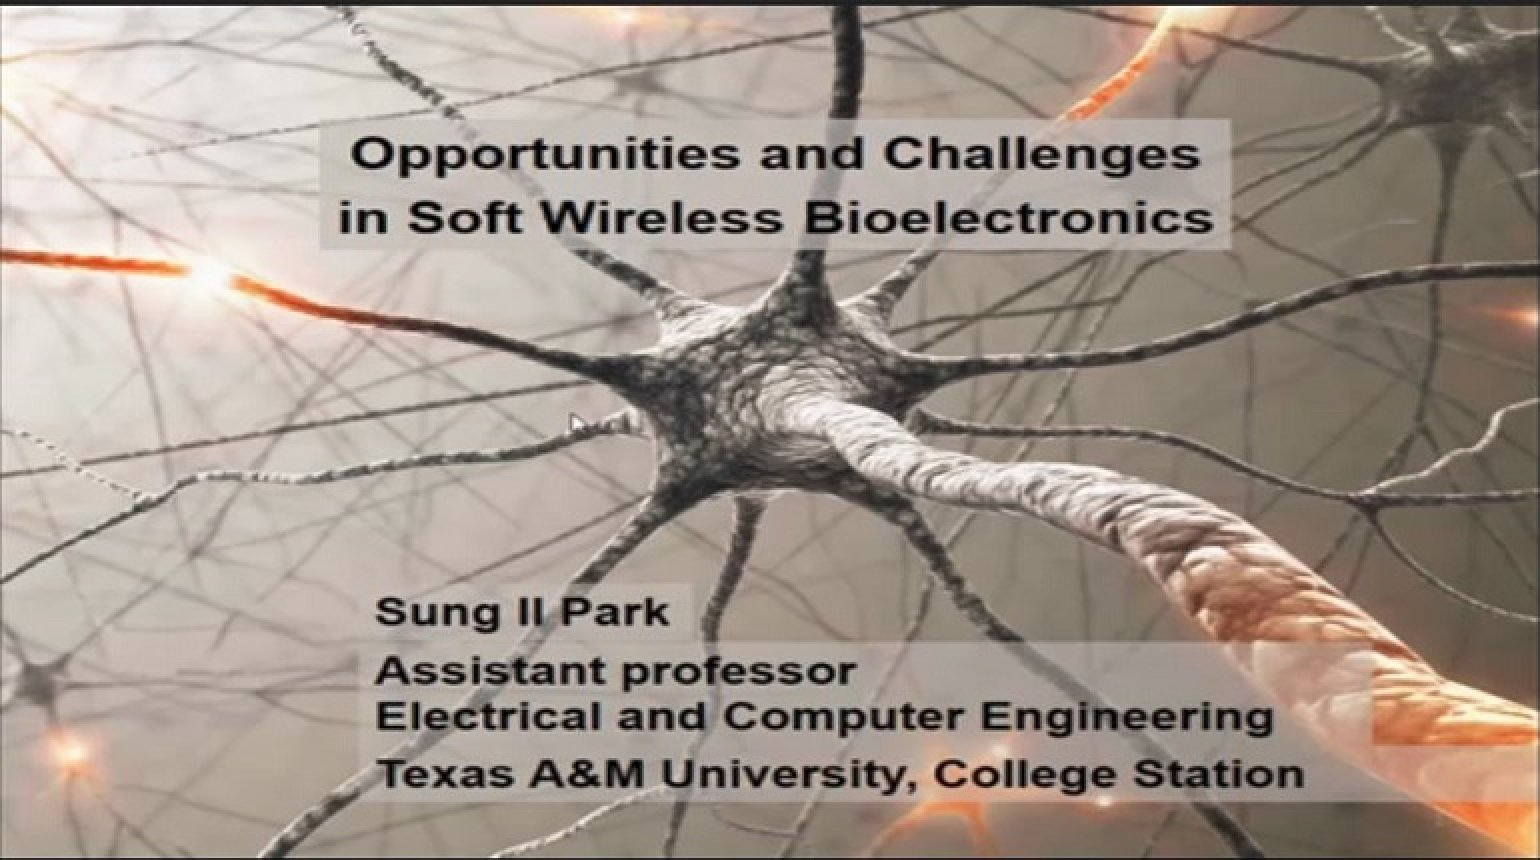 Opportunities and Challenges in Soft Wireless Bioelectronics